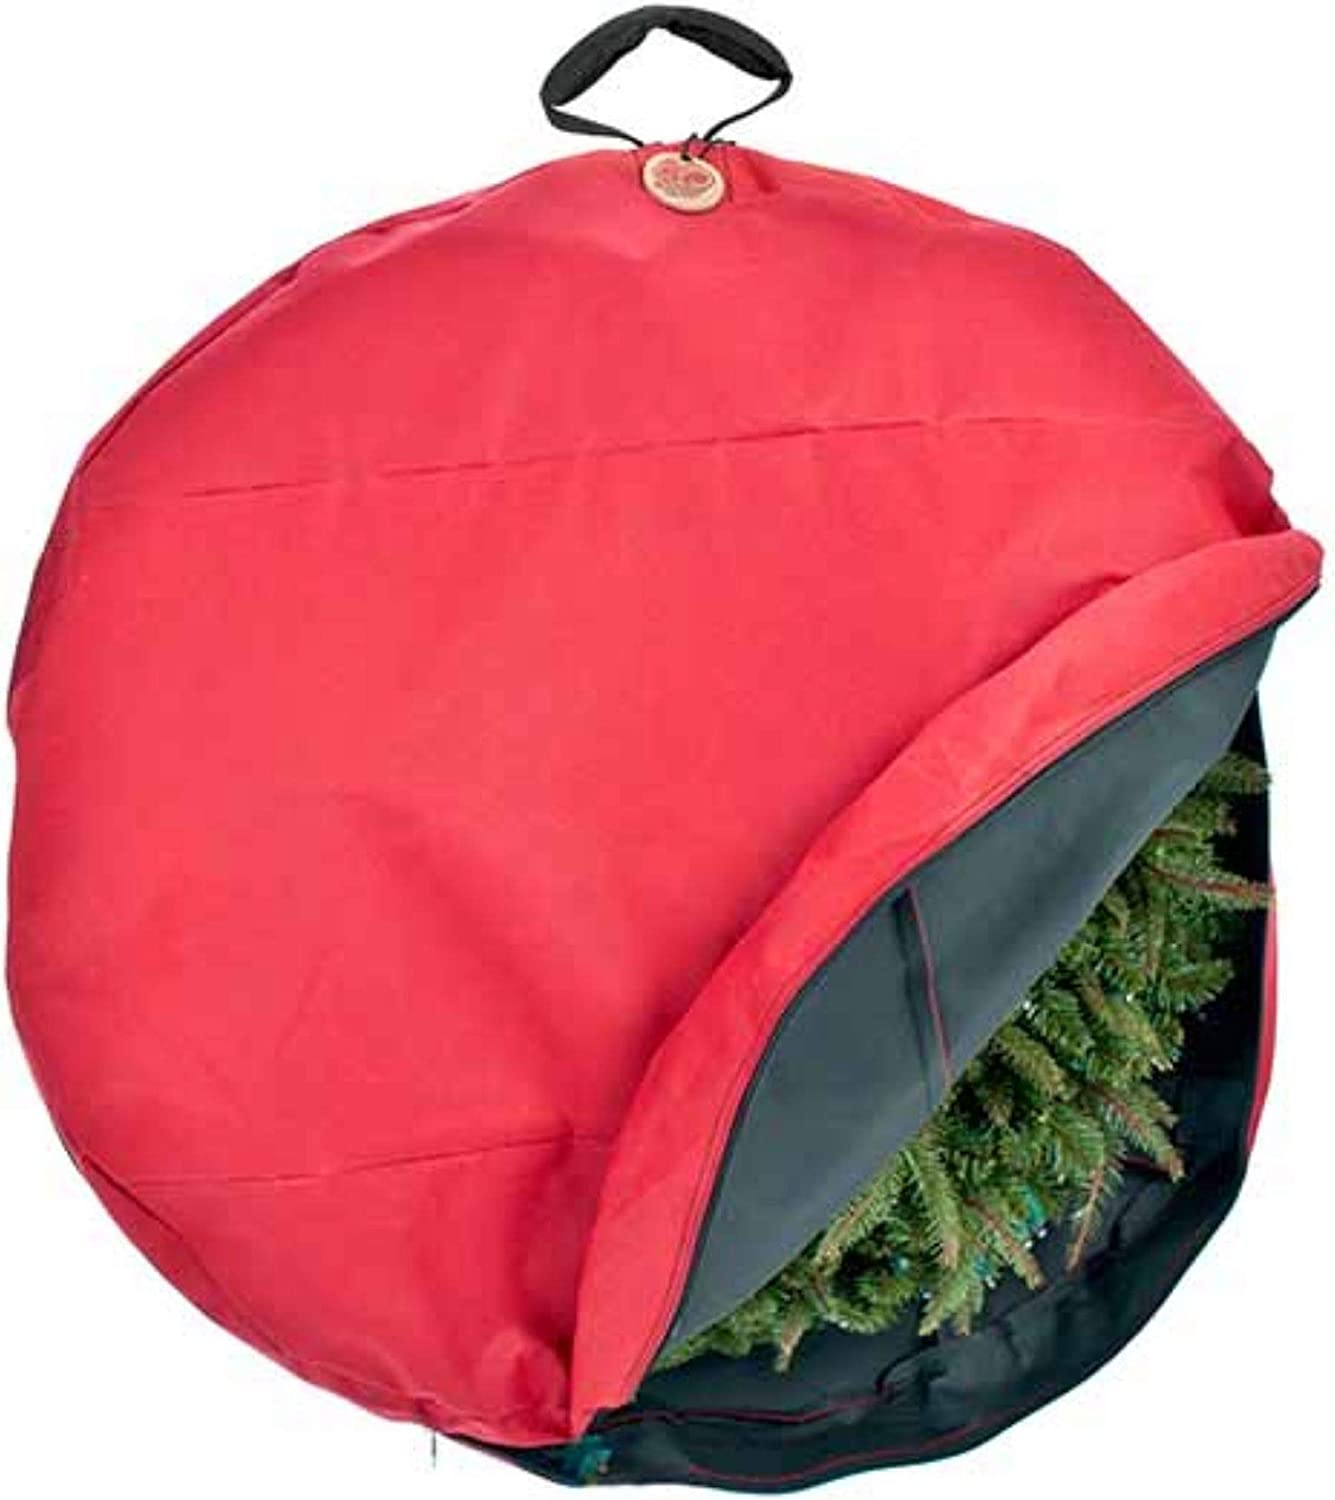 Northlight Direct Suspend Hanging Christmas Storage Wreath - Bag Limited Special low-pricing Price